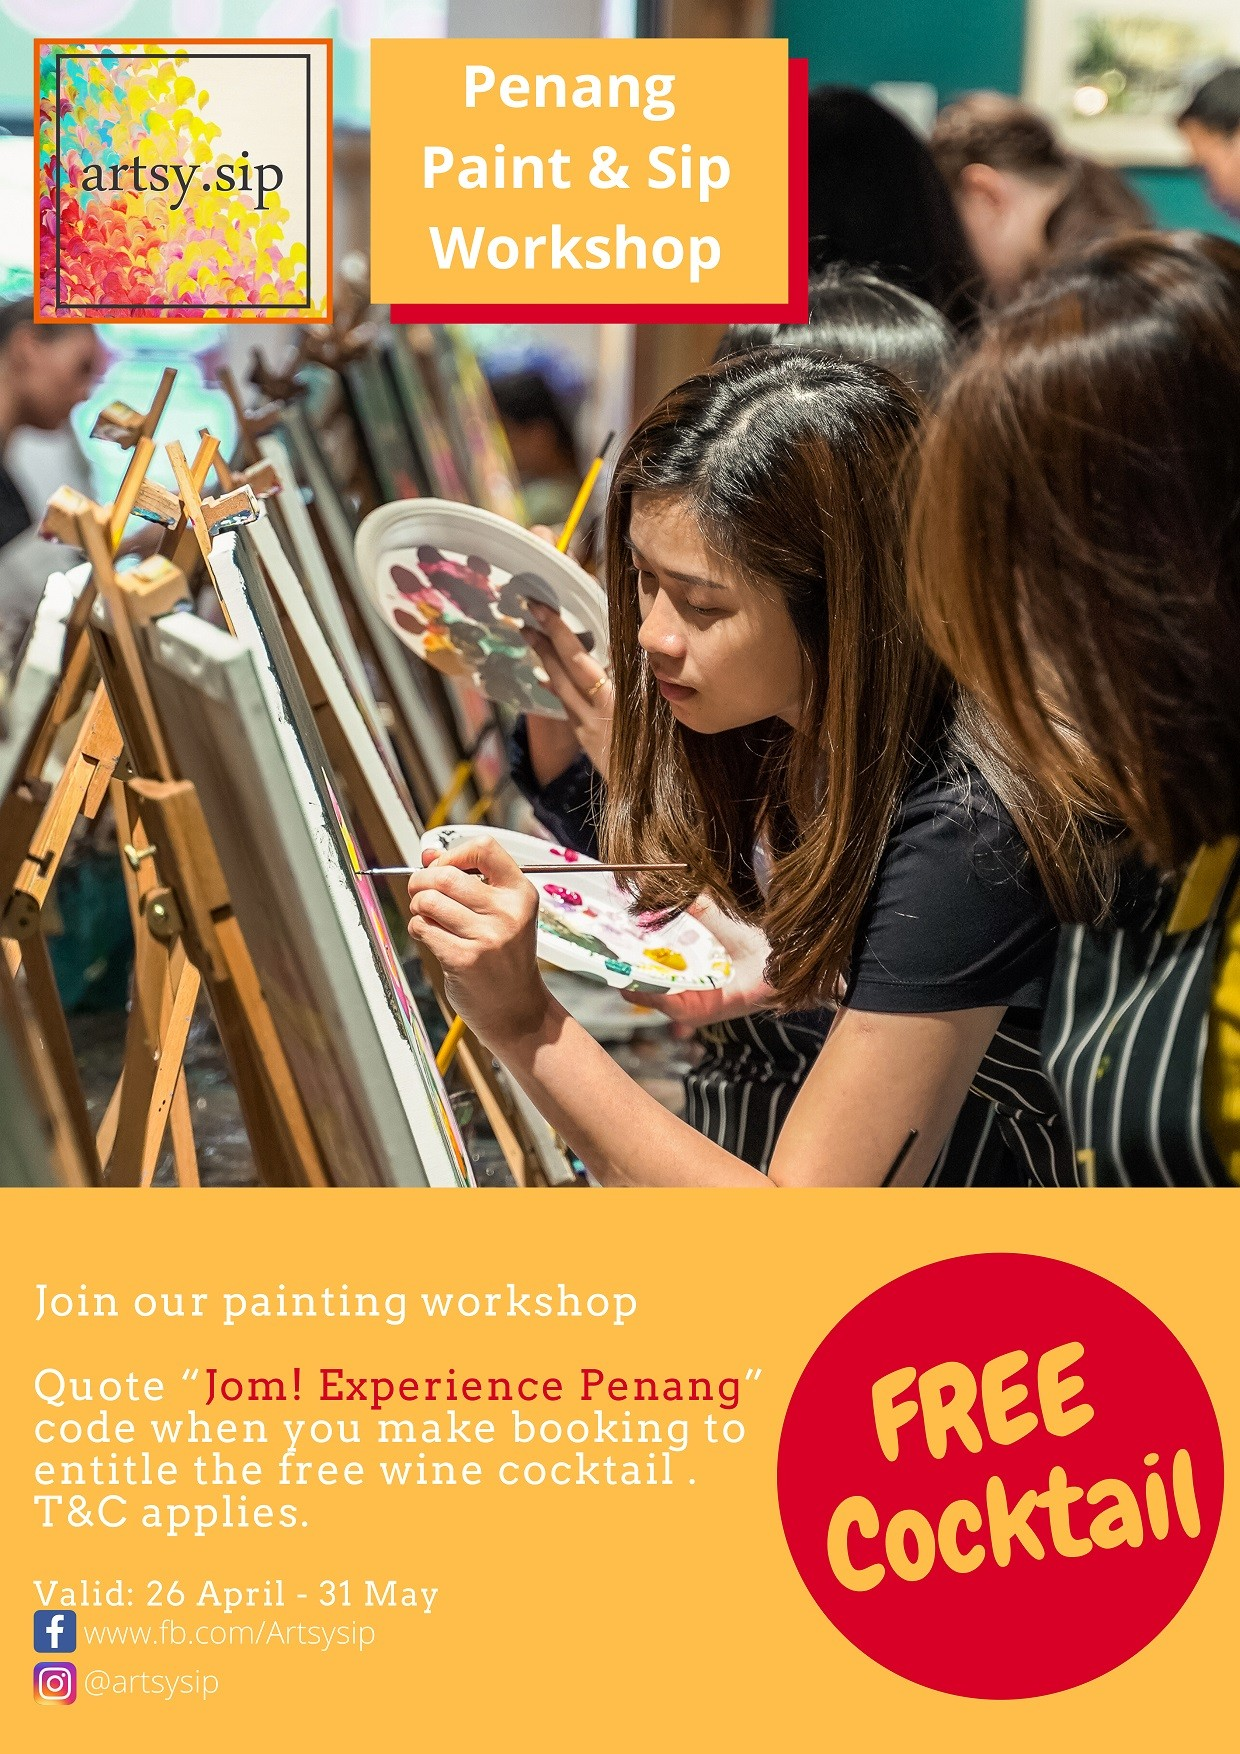 Penang Paint & Sip workshop